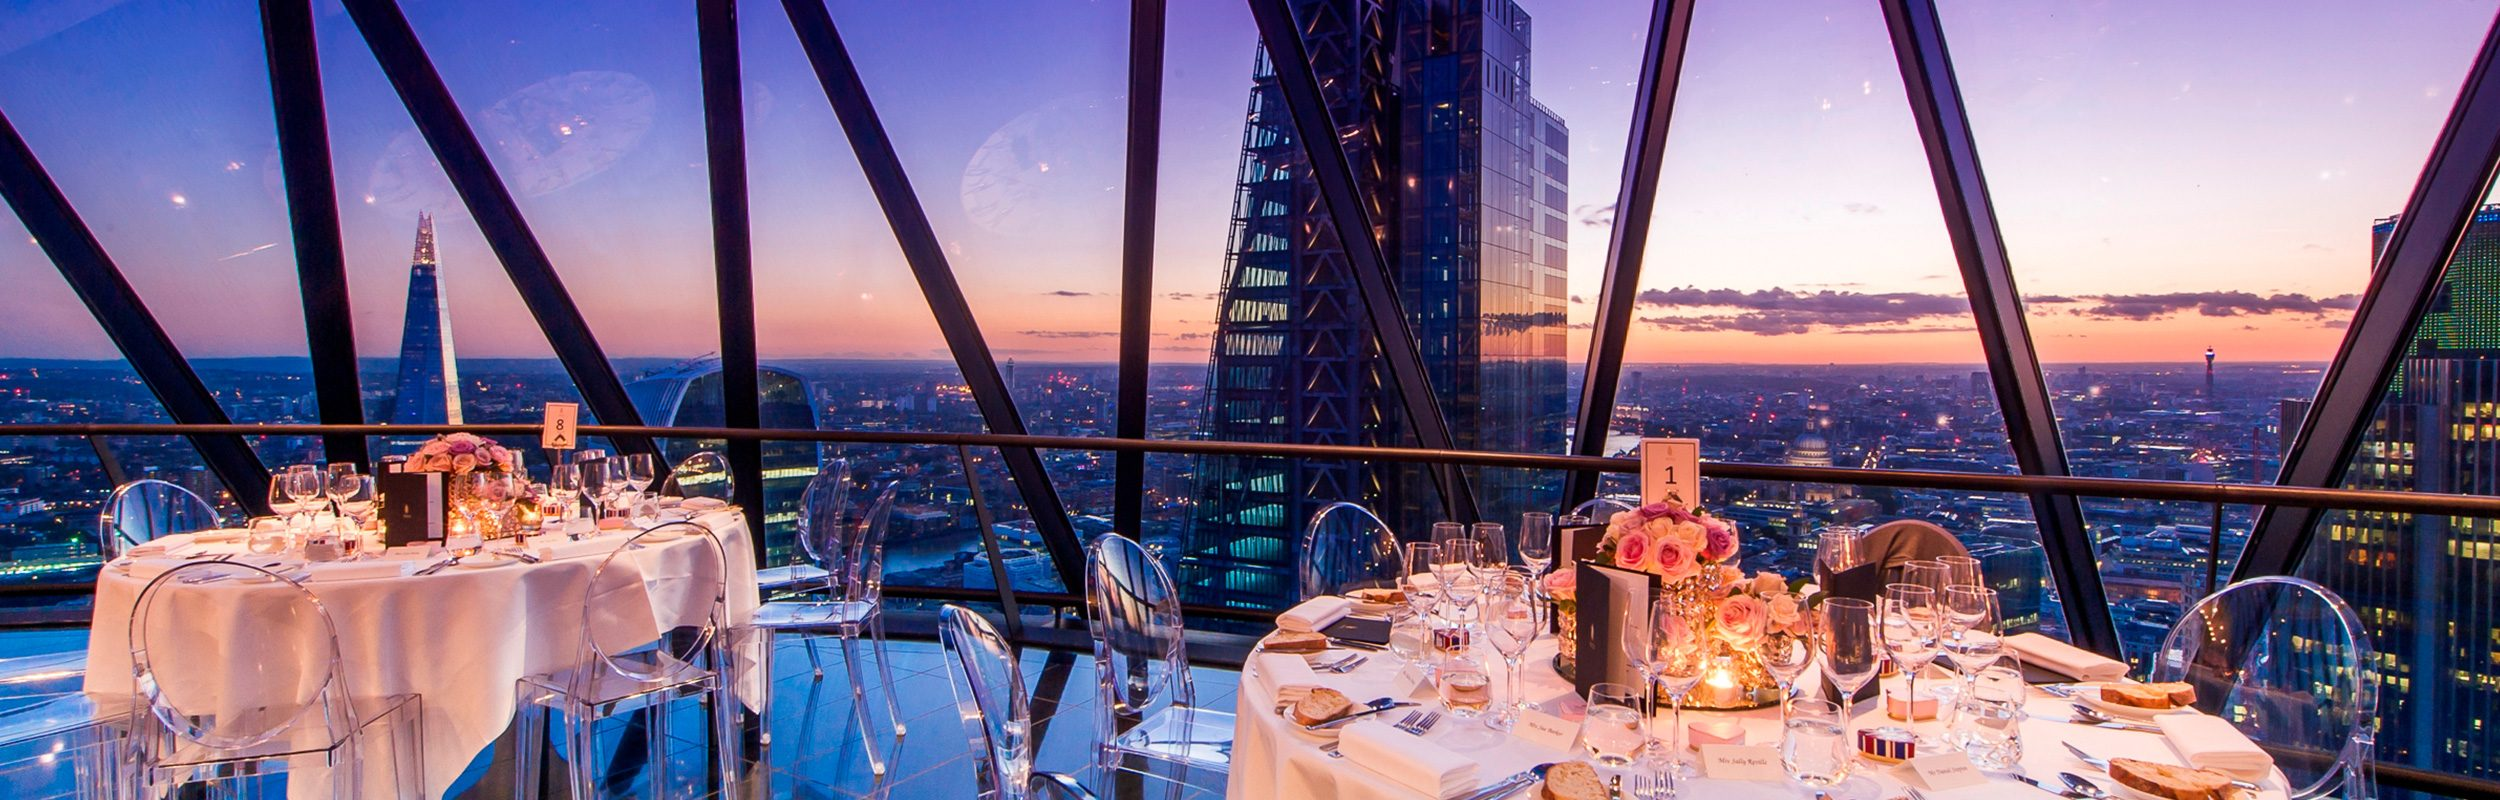 Bar and Bat Mitzvah Packages - Searcys at the Gherkin